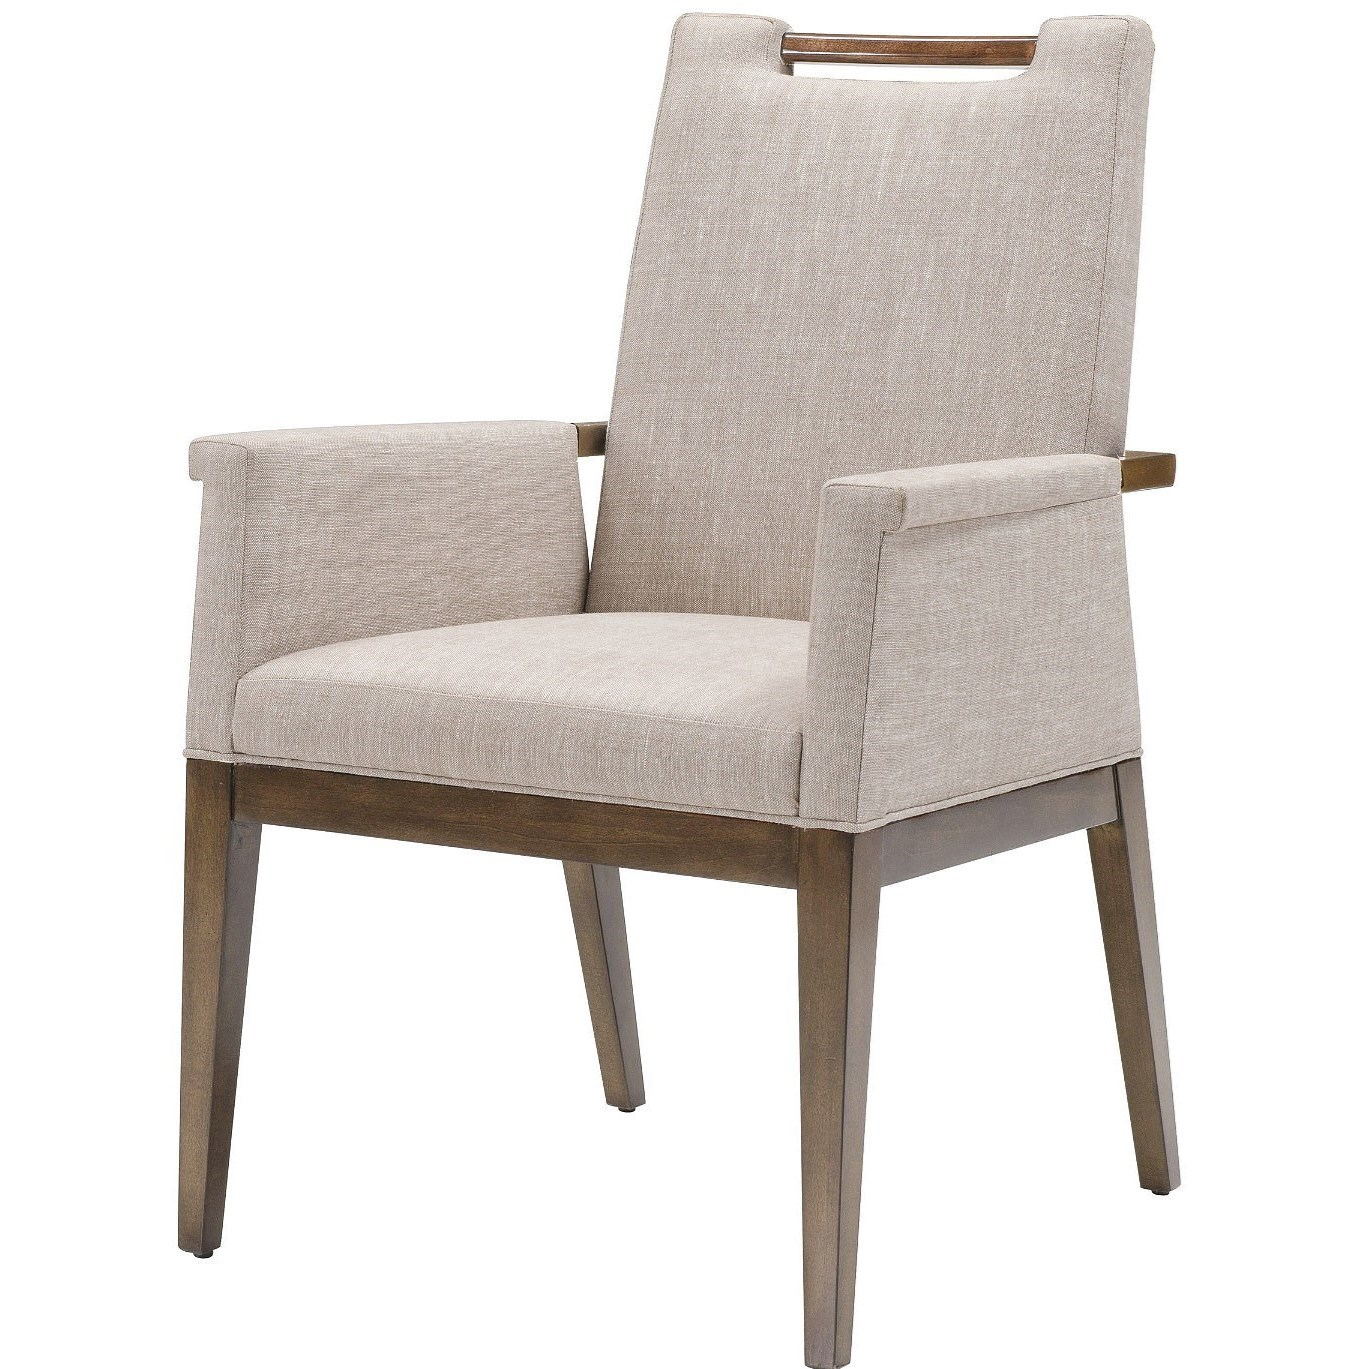 Upholstered Arm Chairs Accent Chairs Liv Upholstered Arm Chair With Exposed Wood By Belle Meade Signature At Jacksonville Furniture Mart